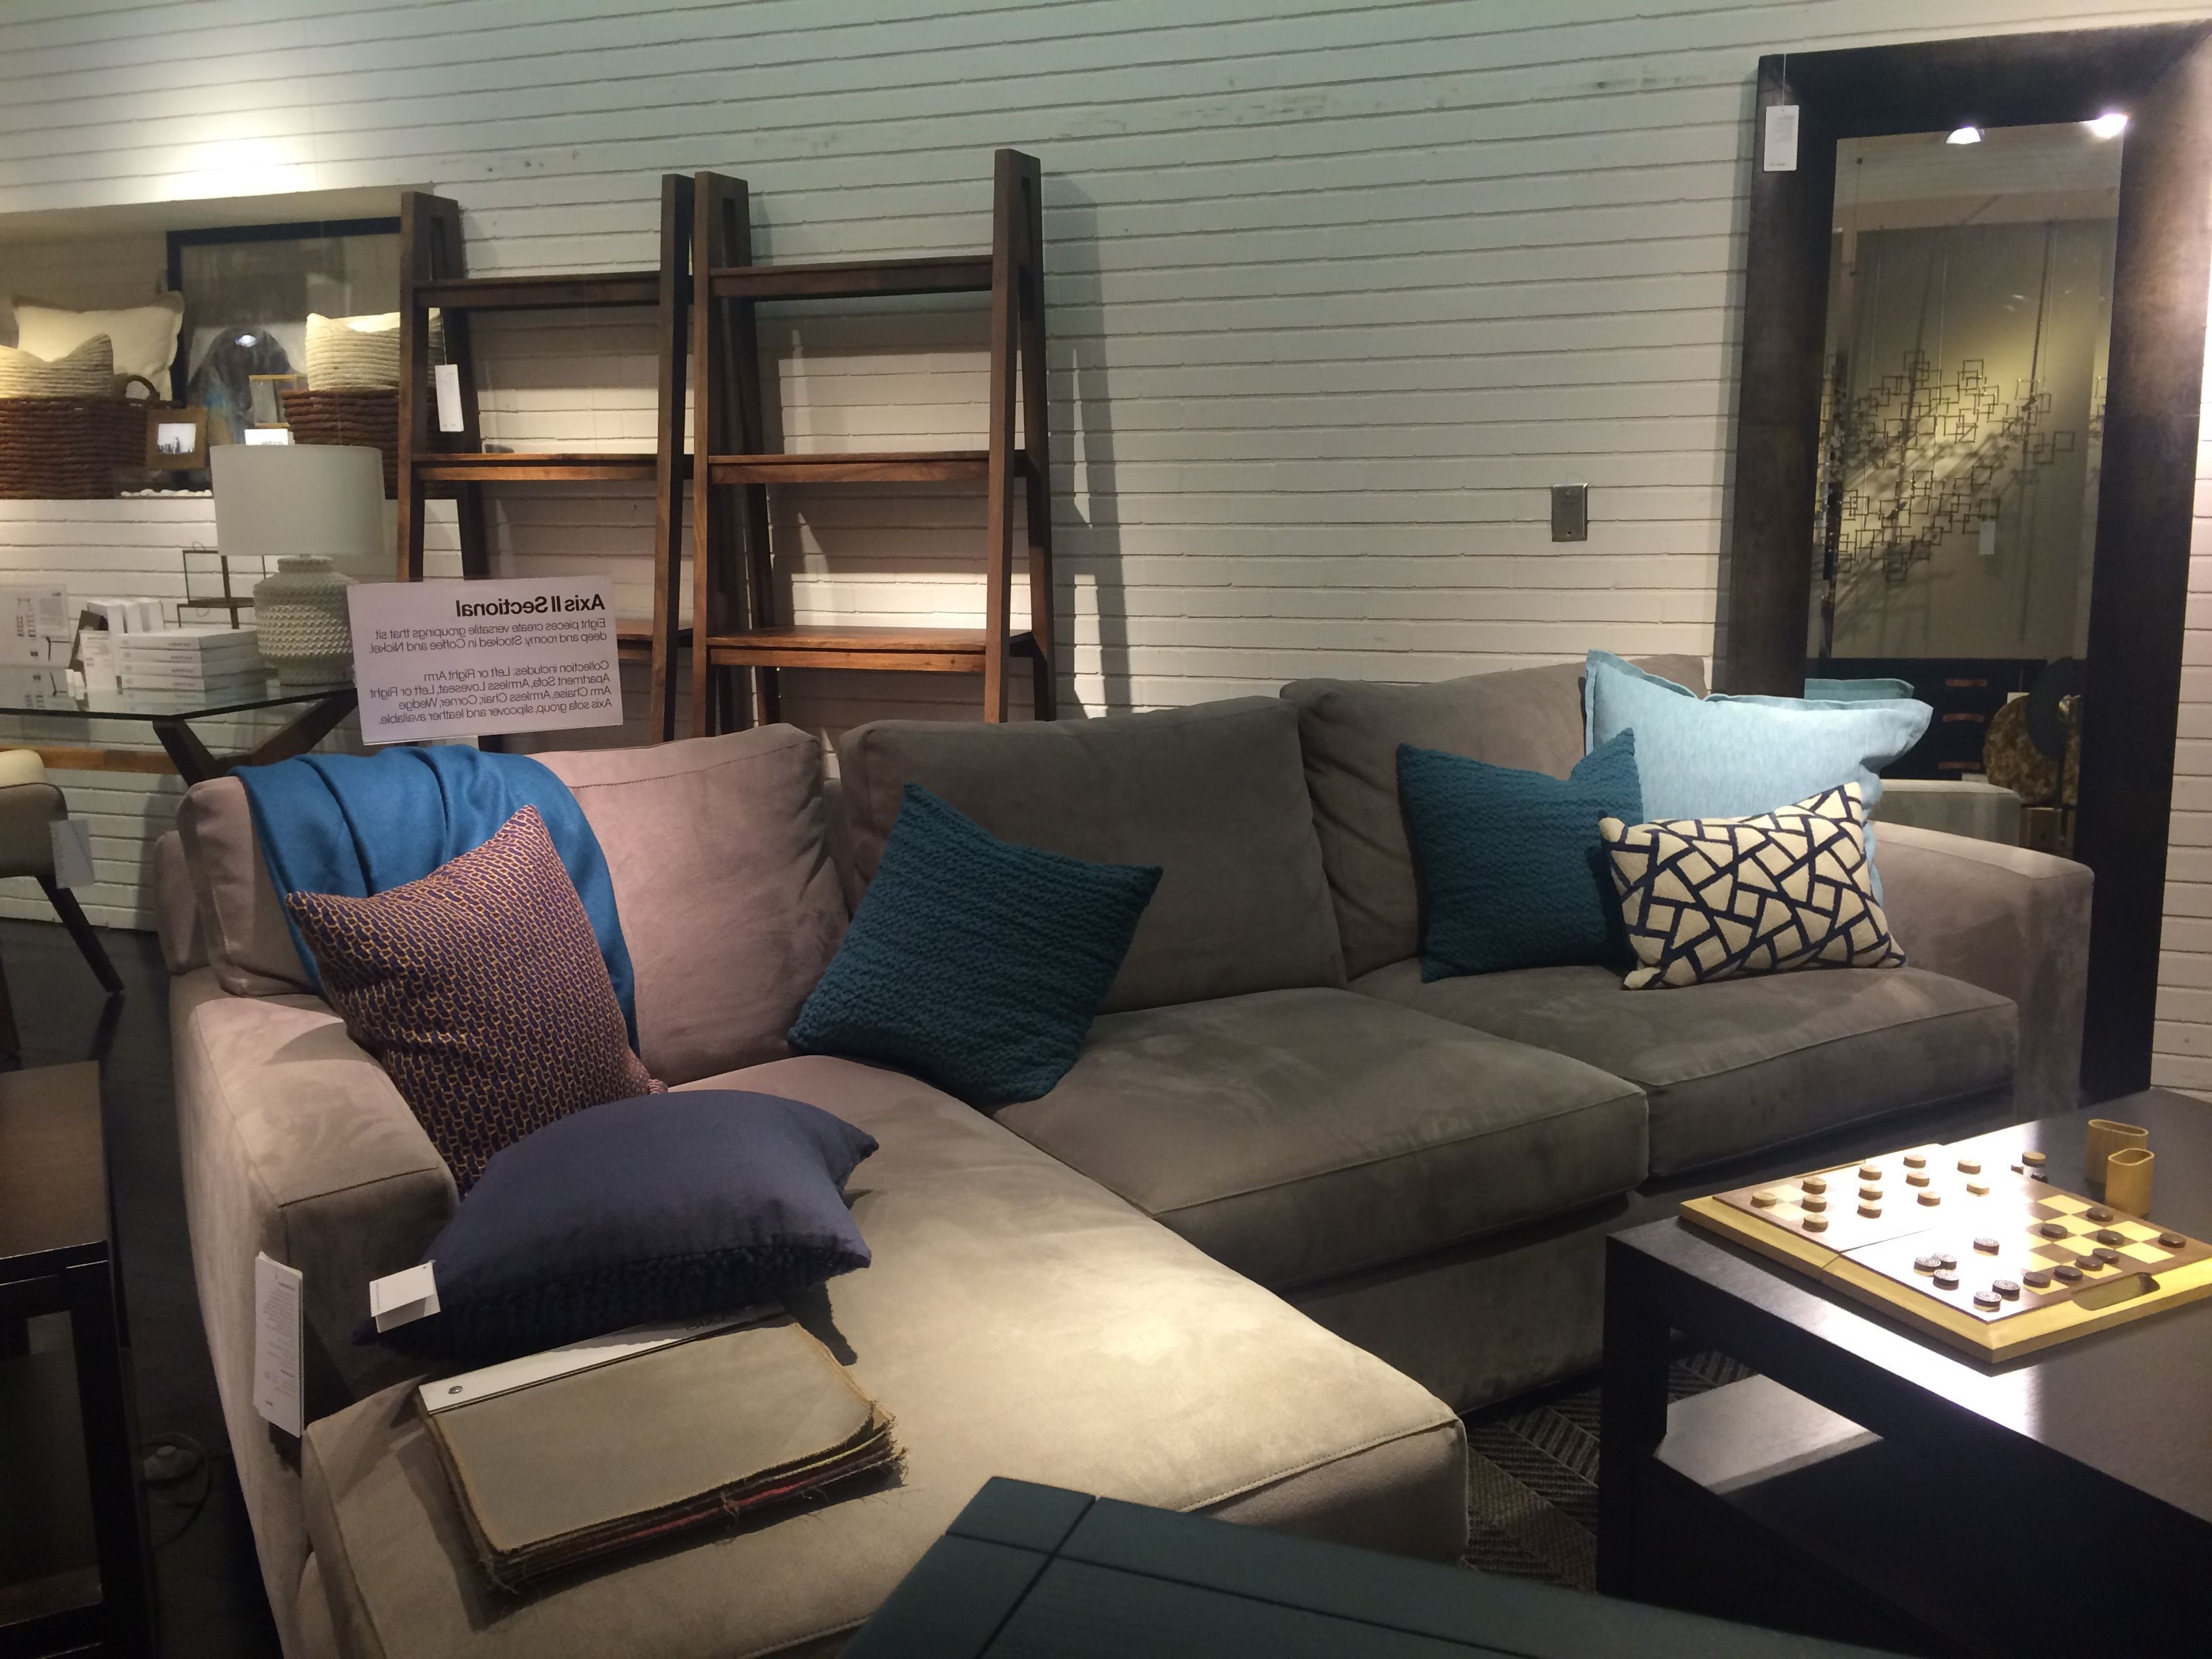 Crate And Barrel Axis Ii Sectional – $2698 (Gallery 20 of 20)